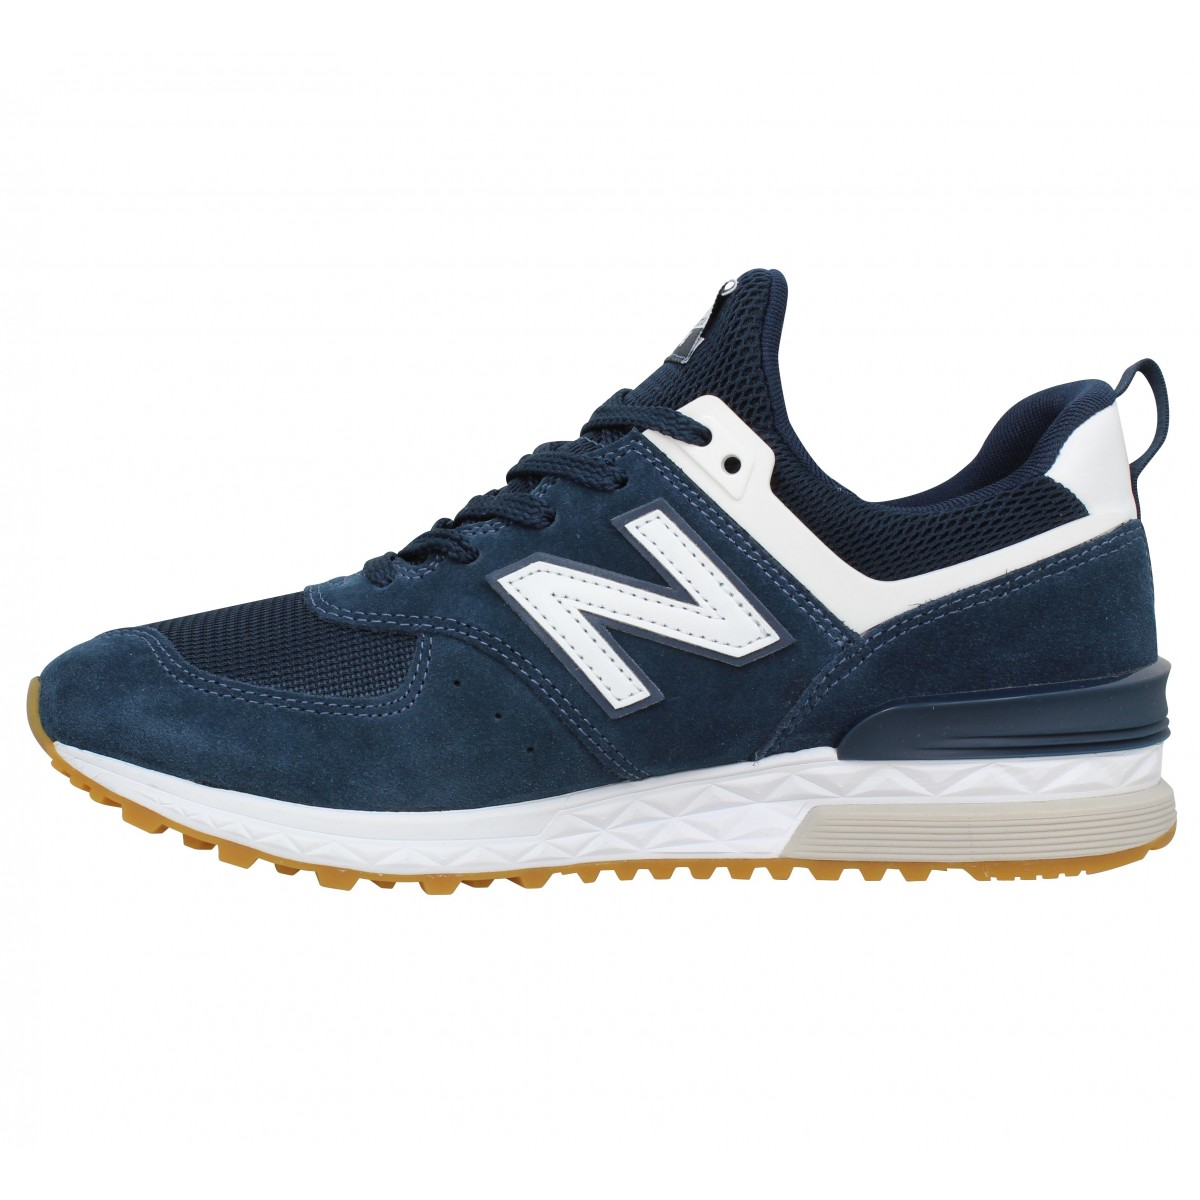 Chaussures New balance 574 sport velours homme marine homme ...